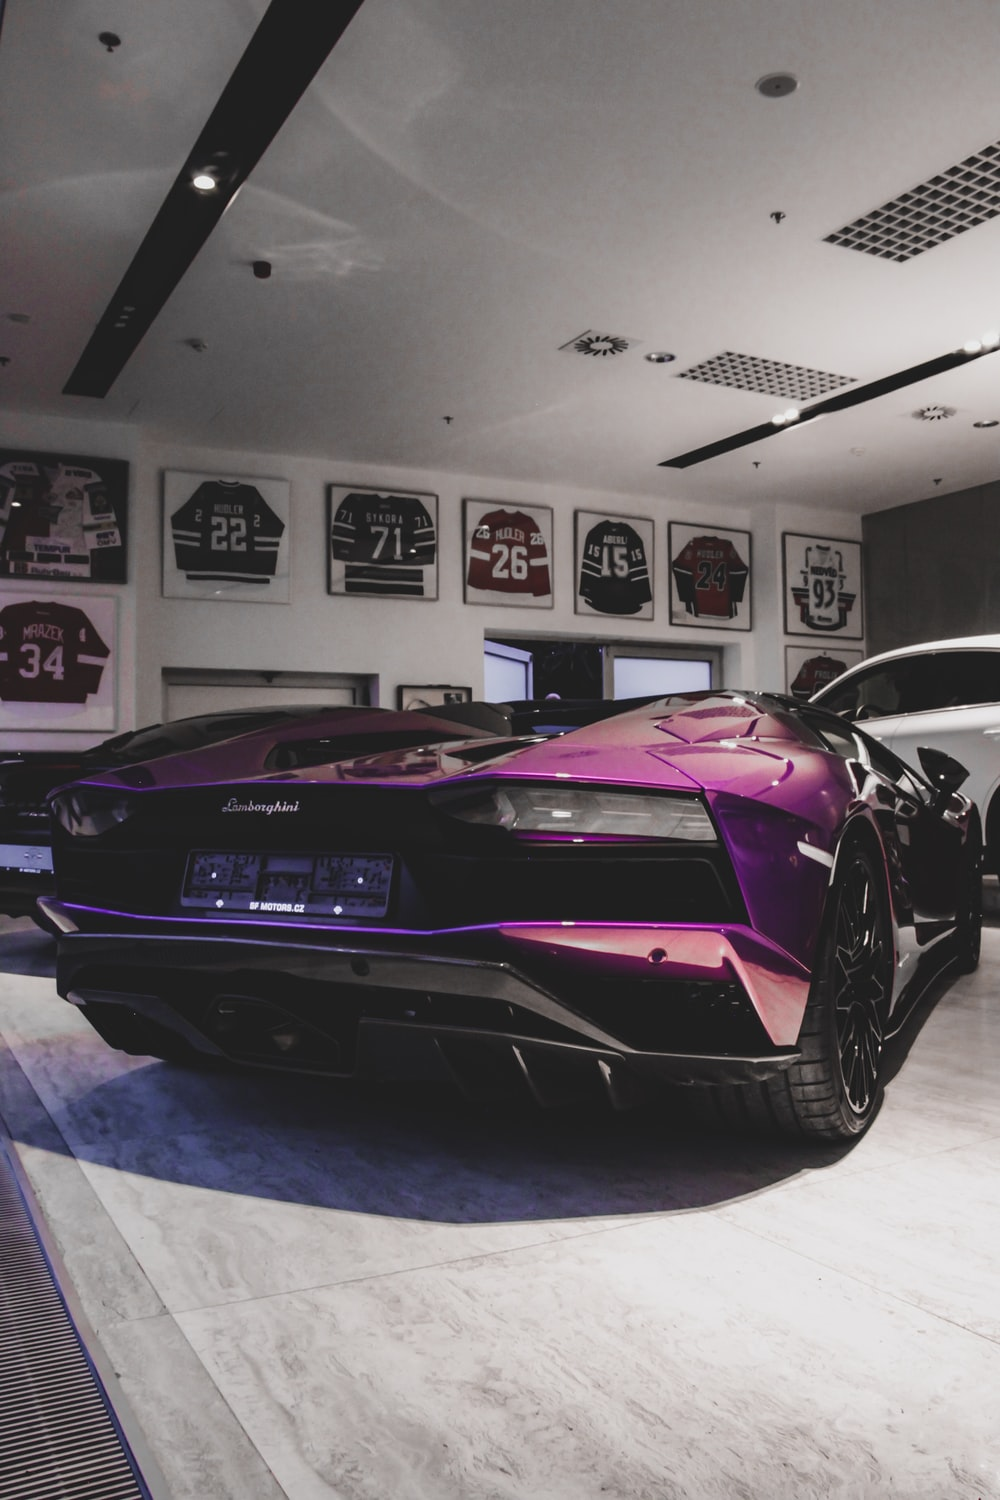 Lamborghini Aventador Pictures Download Free Images On Unsplash